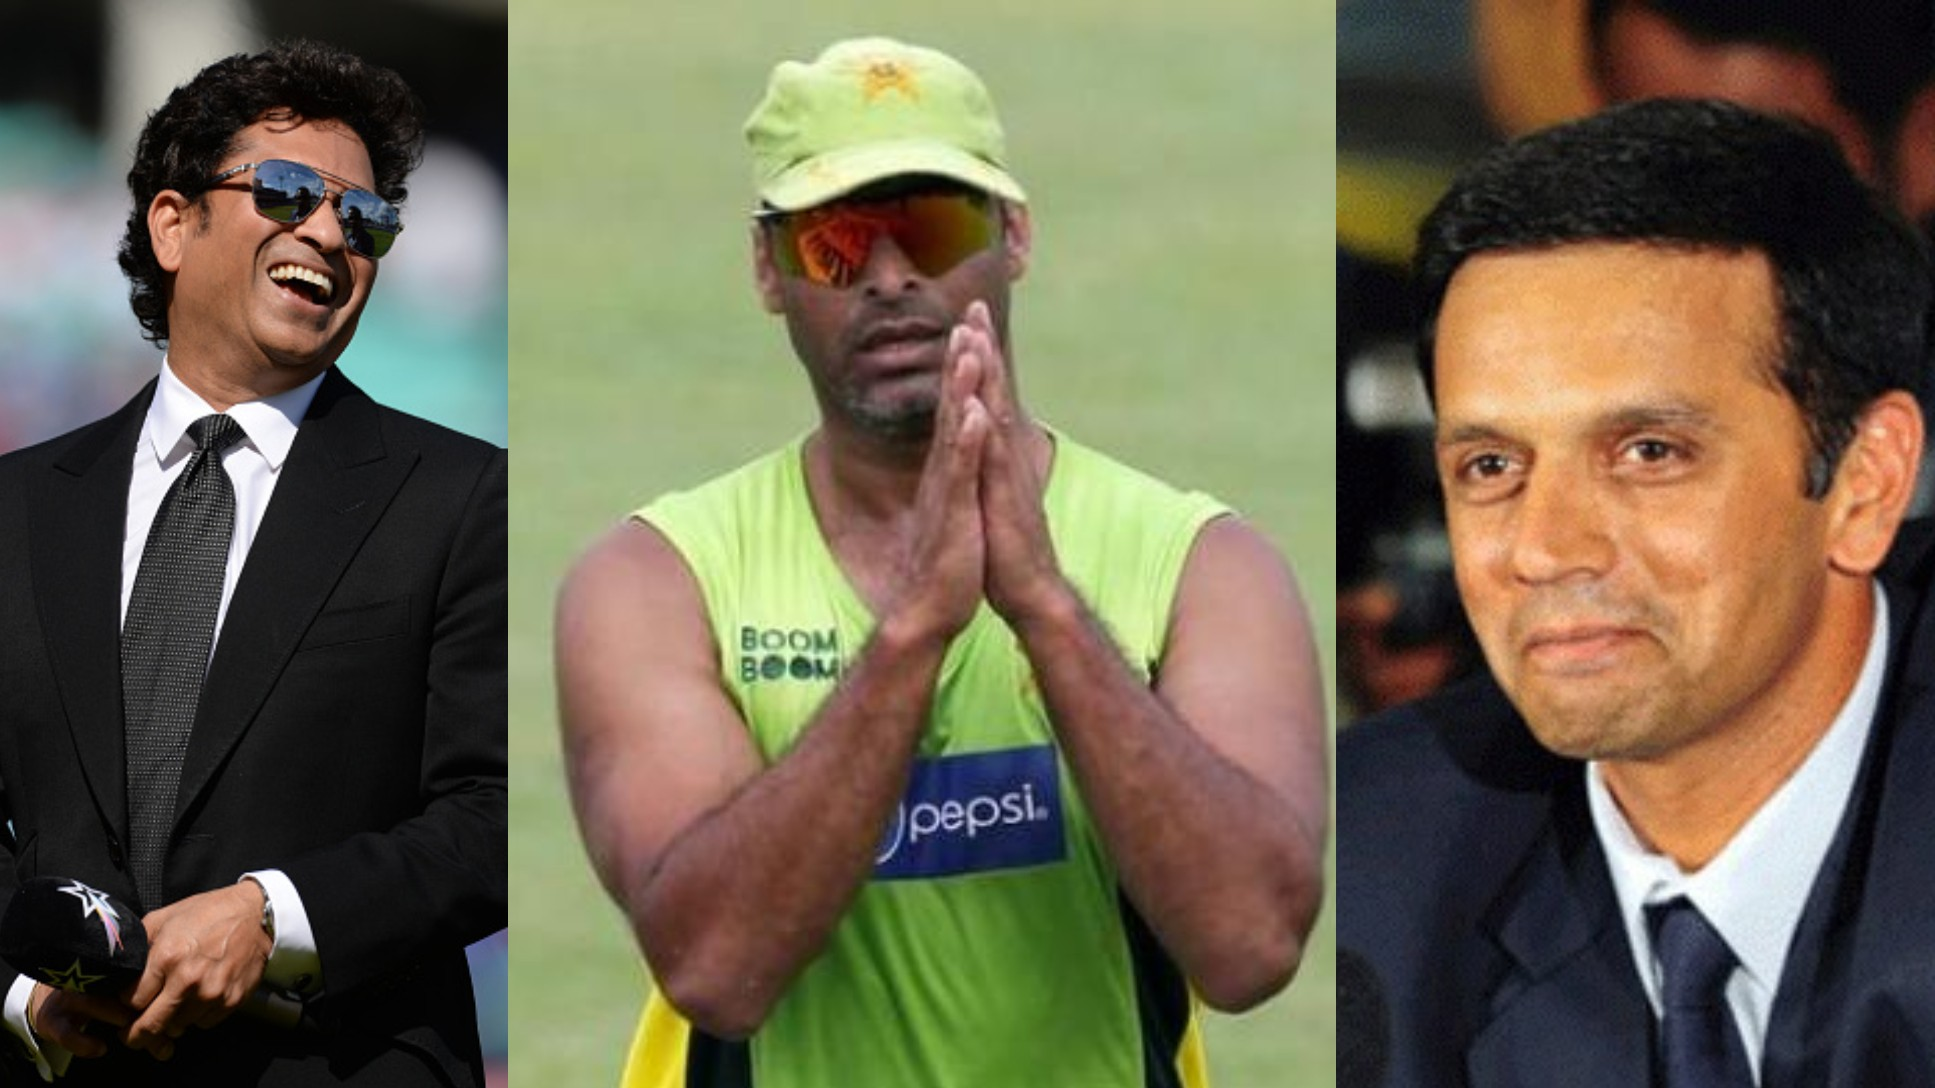 Shoaib Akhtar under fire from fans for using Rahul Dravid's achievements to take dig at Sachin Tendulkar